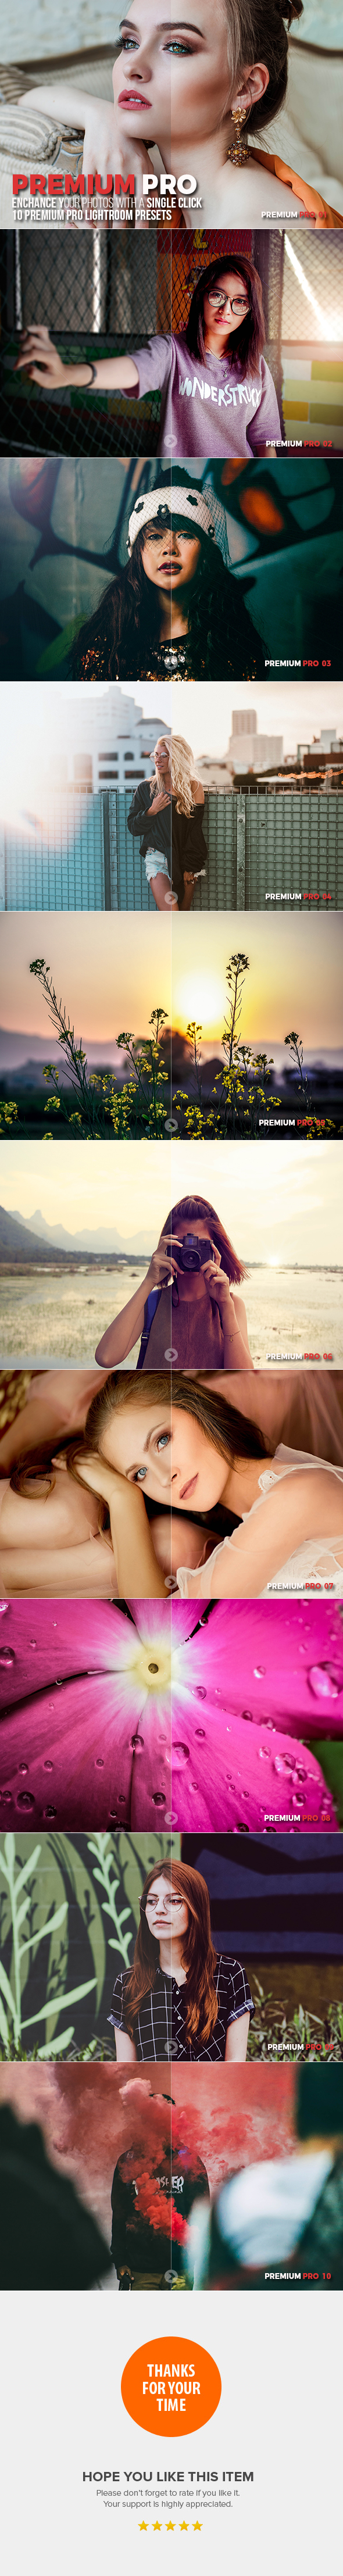 GraphicRiver 10 Premium Pro Lightroom Presets 20801401